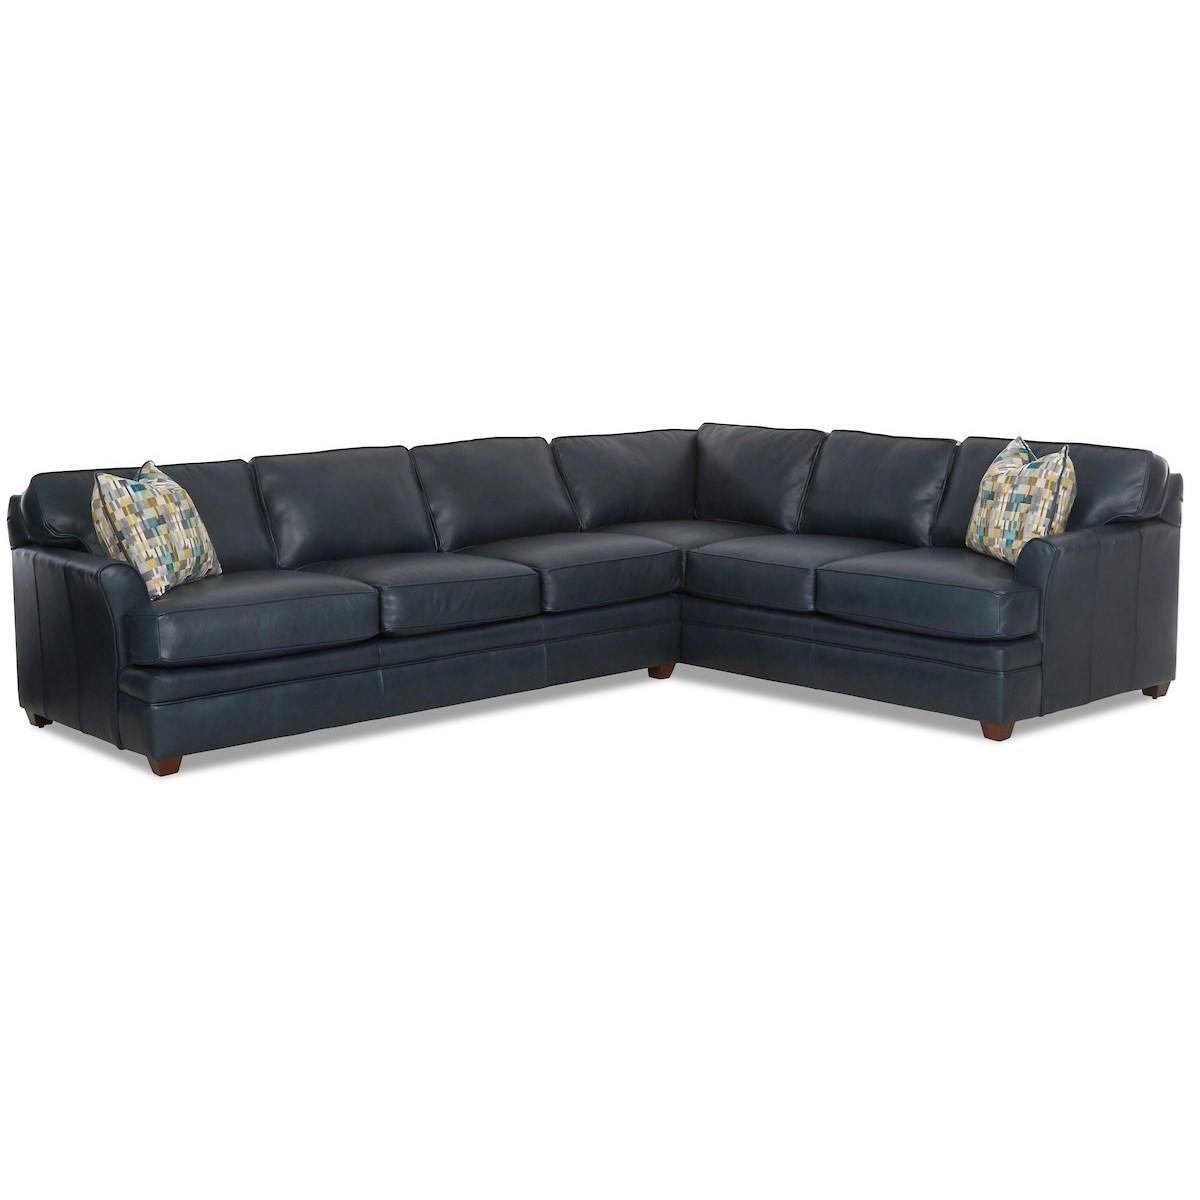 Living Your Way 2-Piece Sectional by Klaussner at Northeast Factory Direct